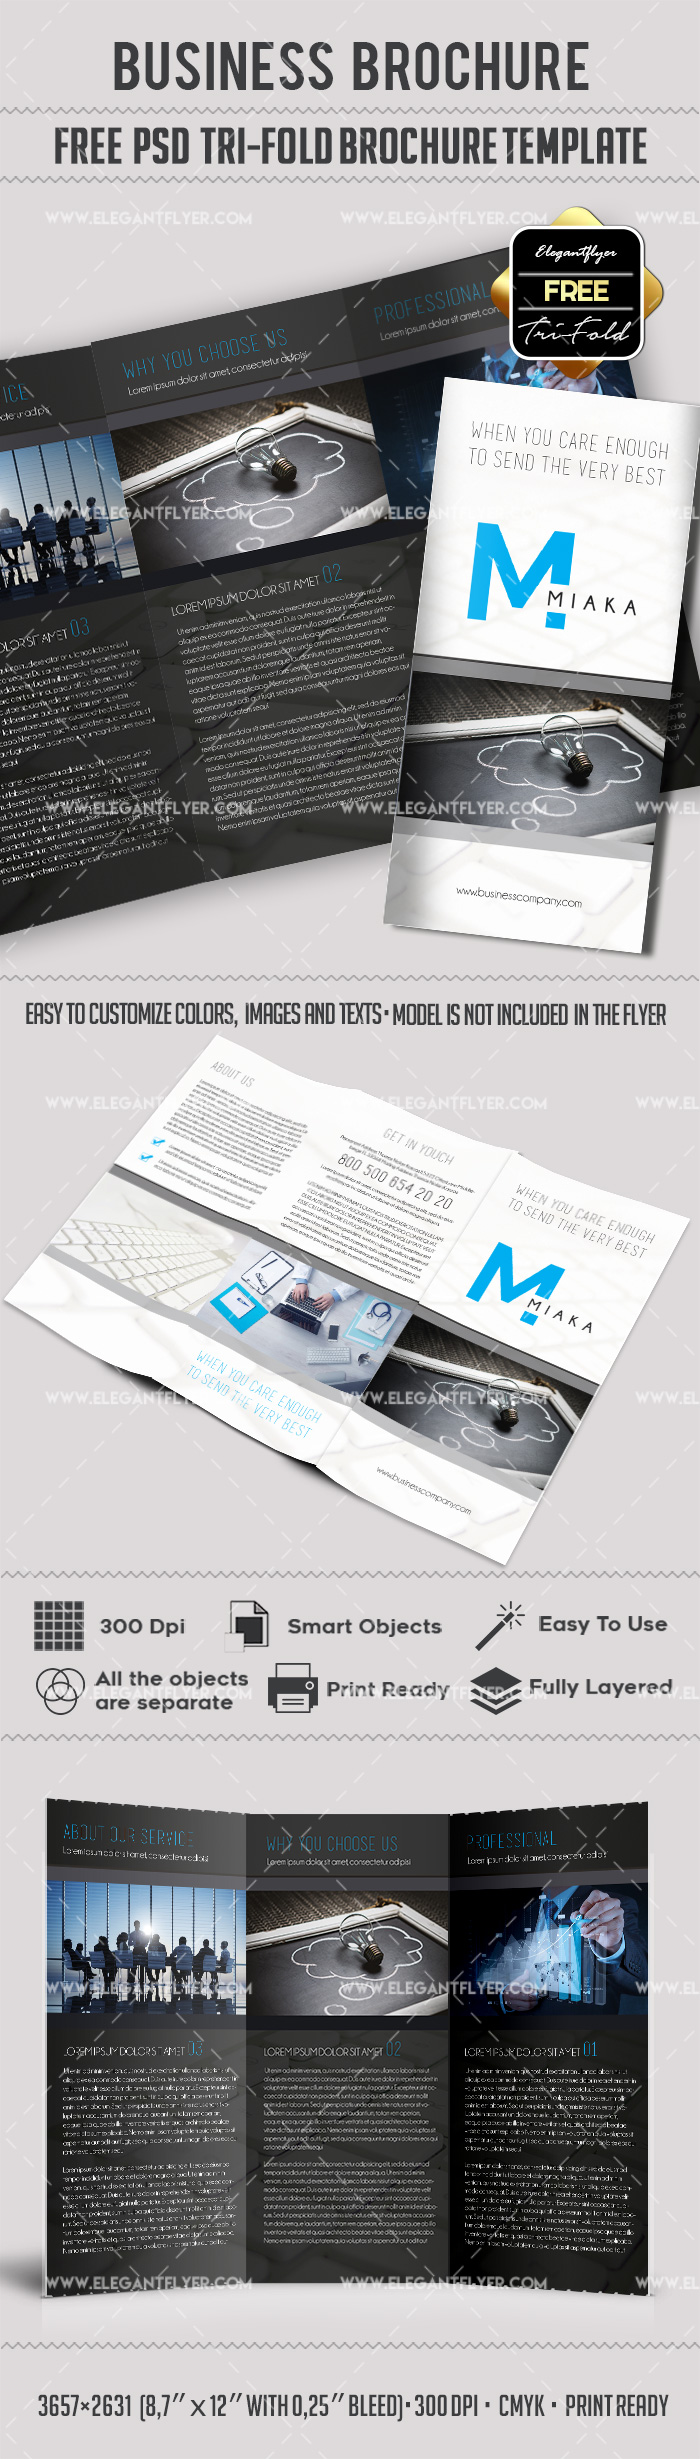 Tri fold brochure templates free download by elegantflyer for Tri fold brochure template download